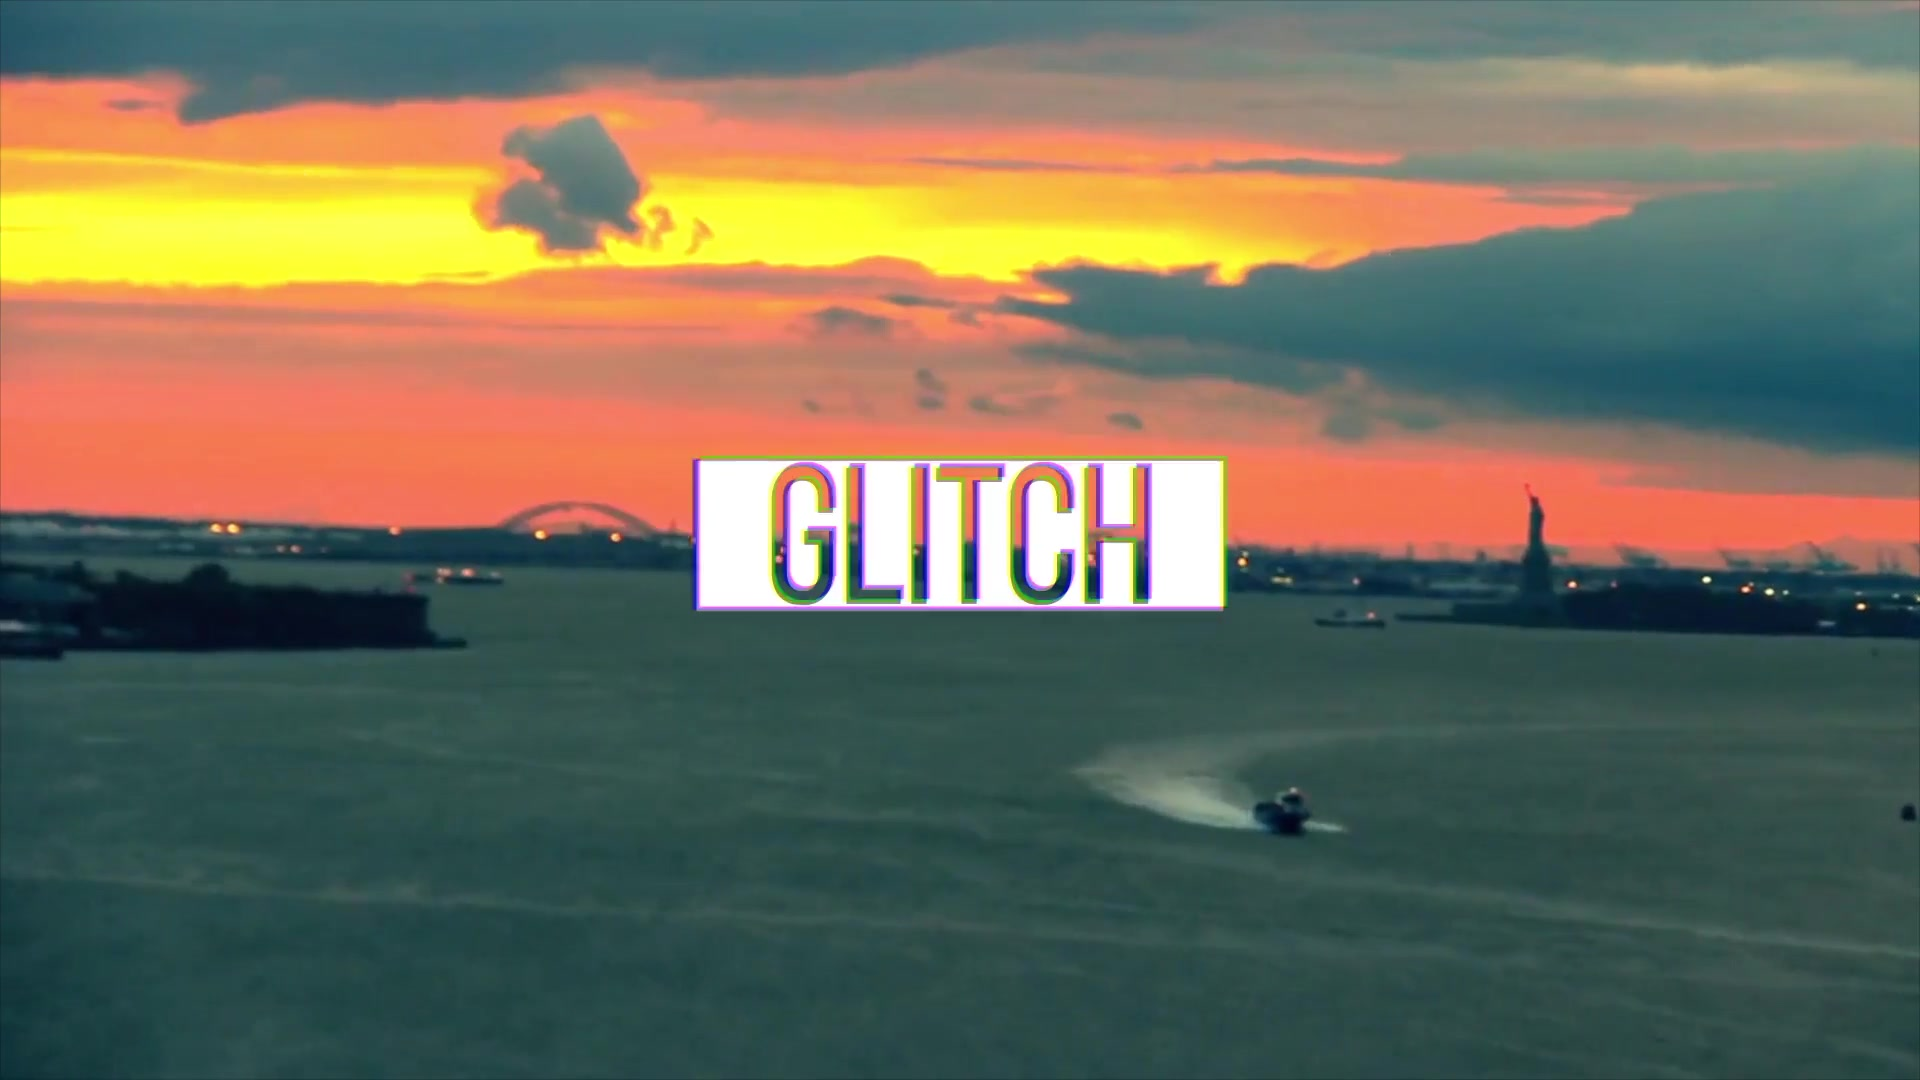 Dynamic Glitch Opener 2 - Download Videohive 14822061